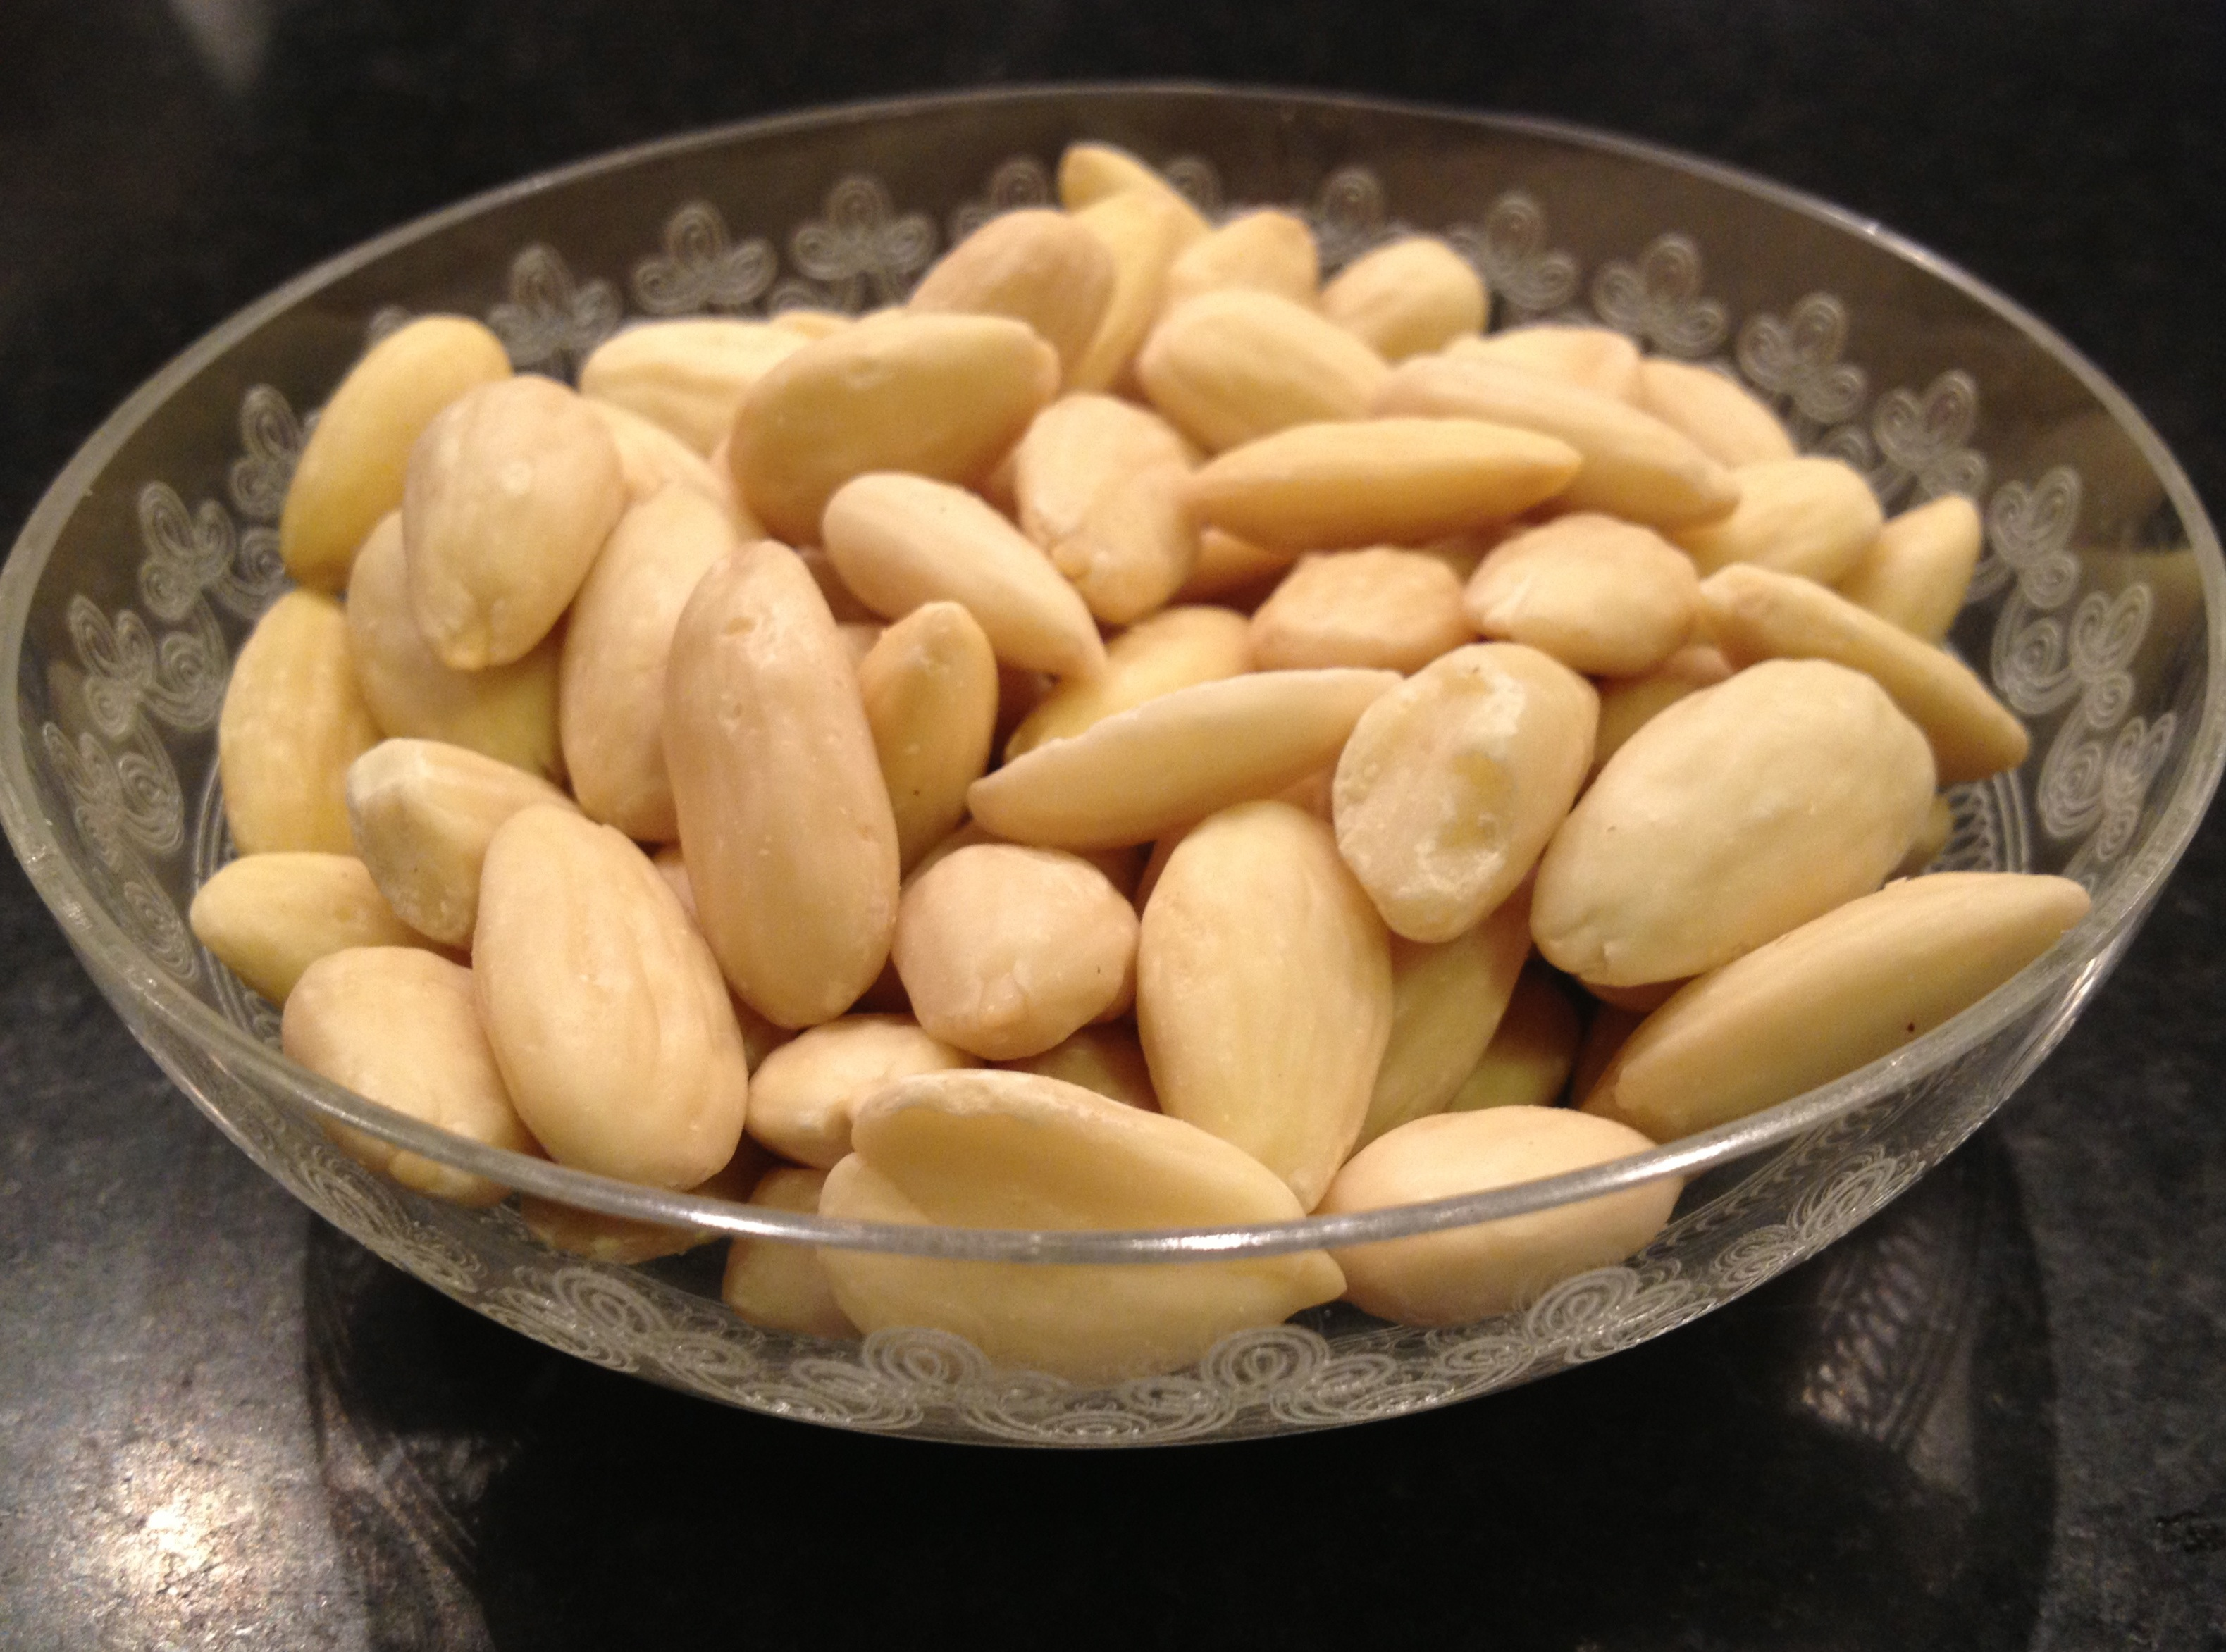 Raw almonds in a small crystal bowl.